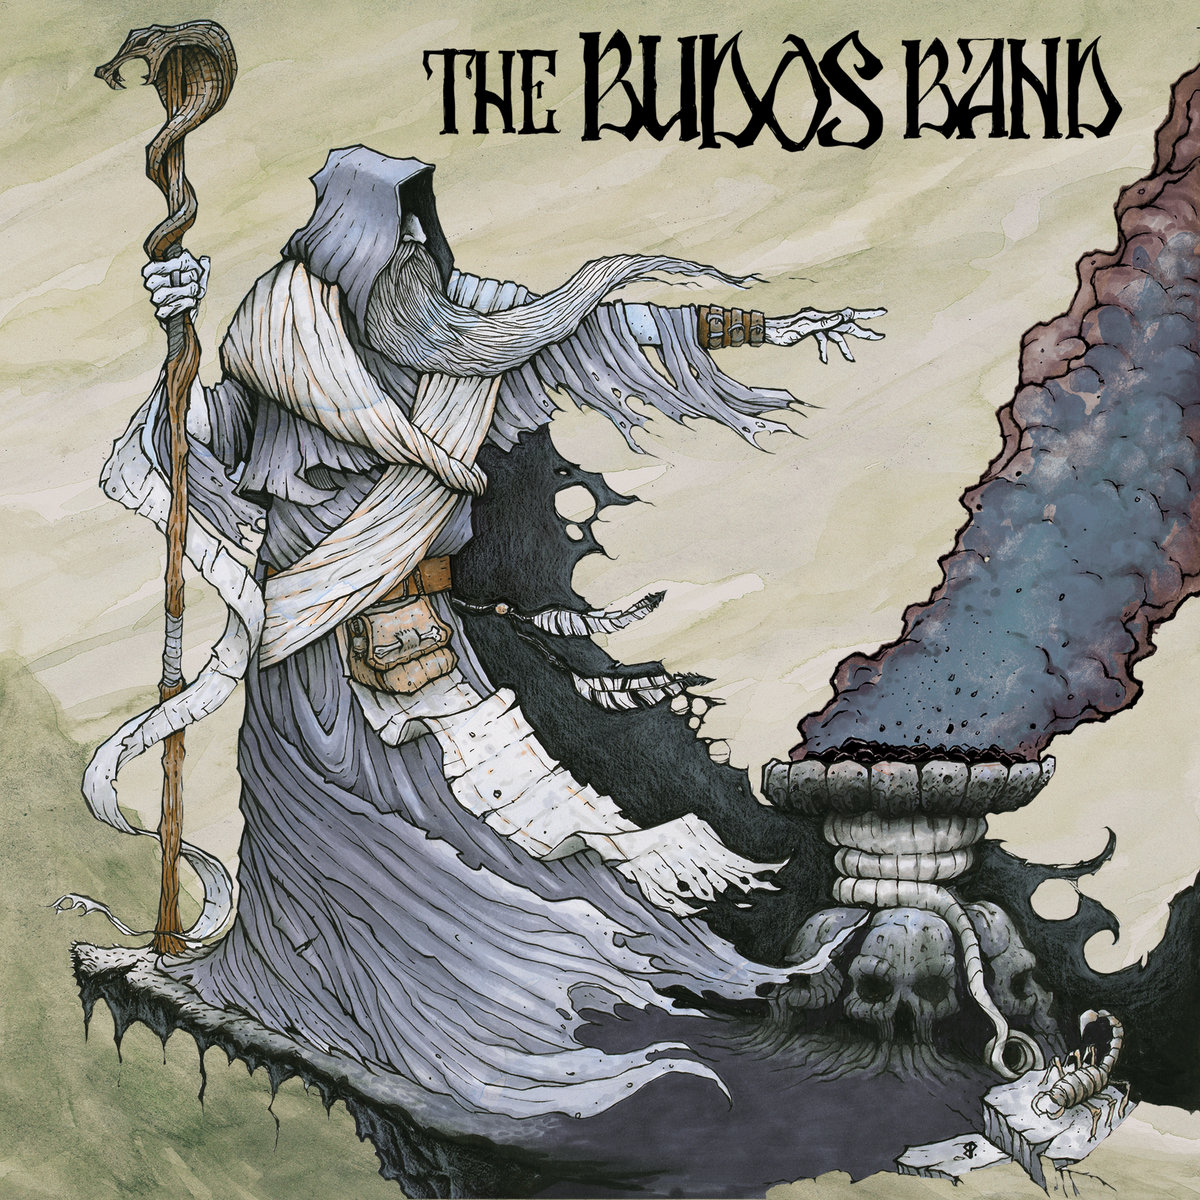 THE BUDOS BAND TORRENT DOWNLOAD